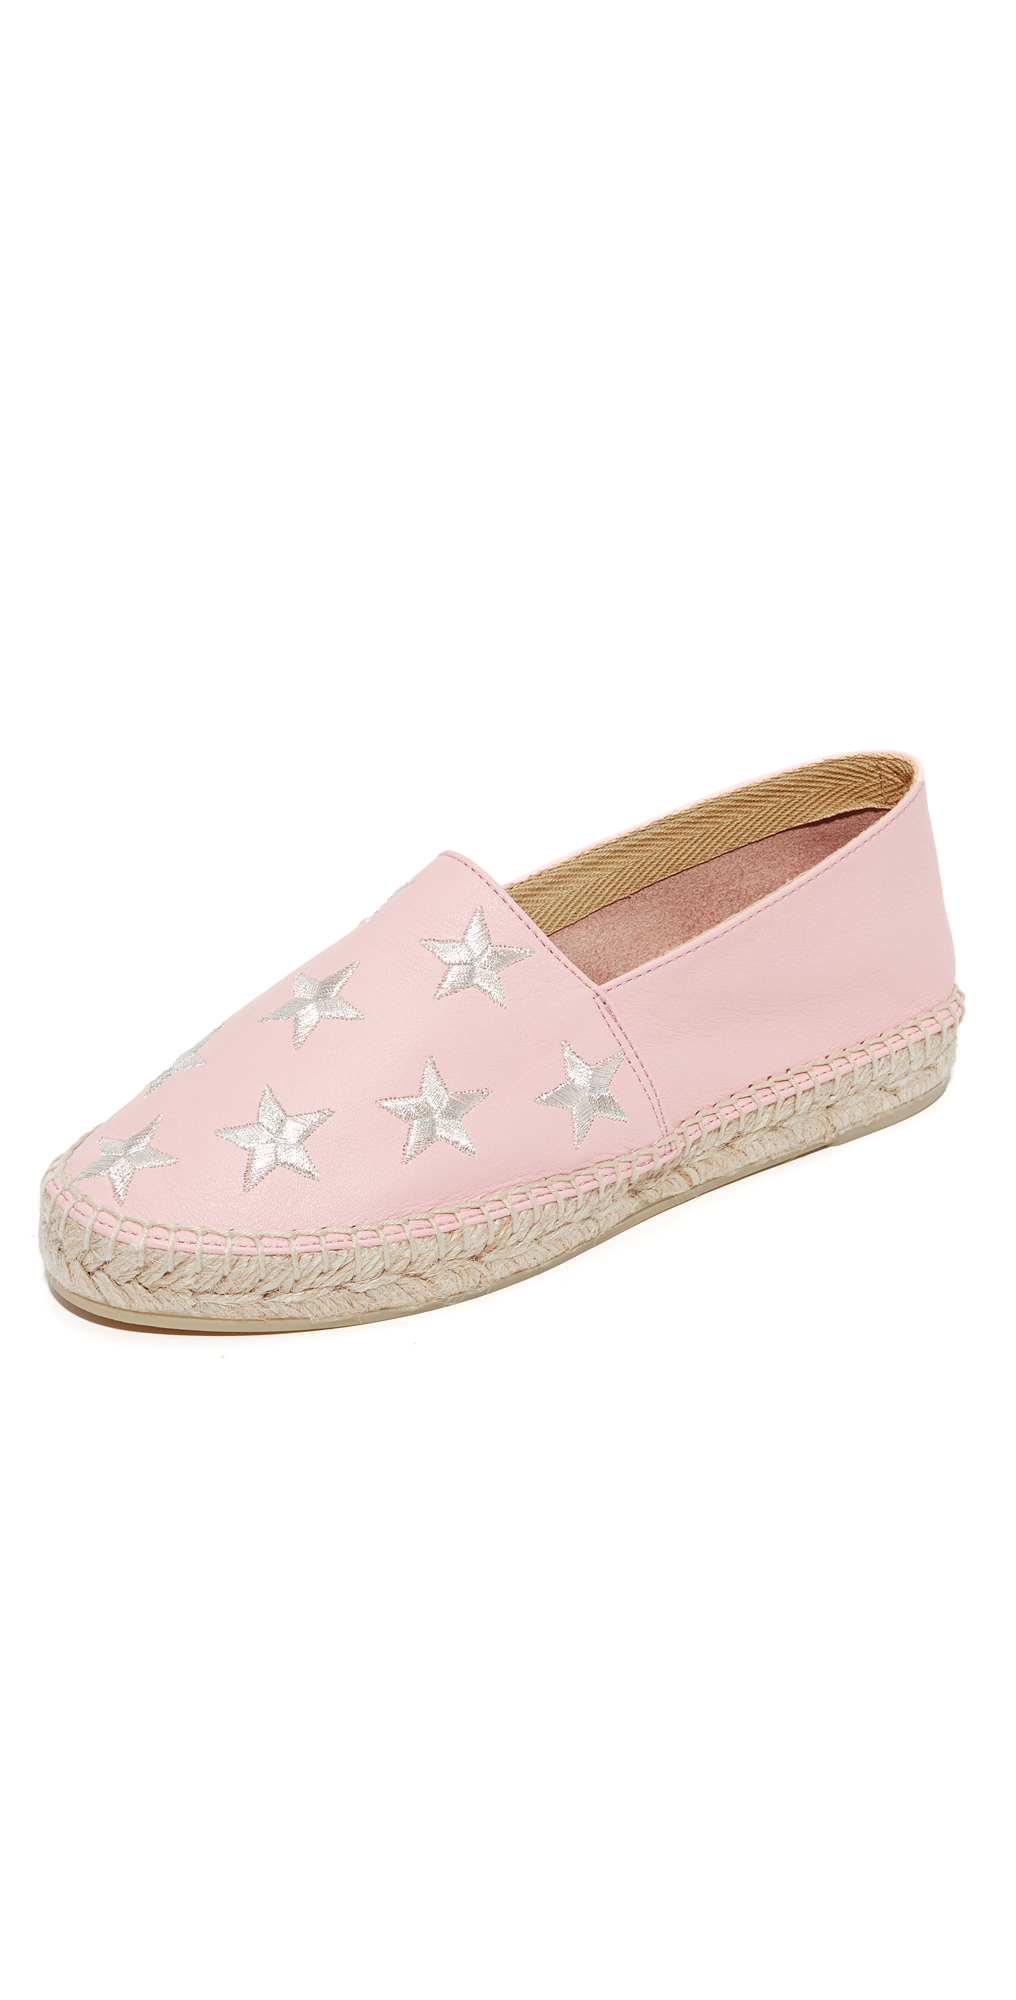 Star Embroidered Leather Espadrilles ONE by South Parade Footwear